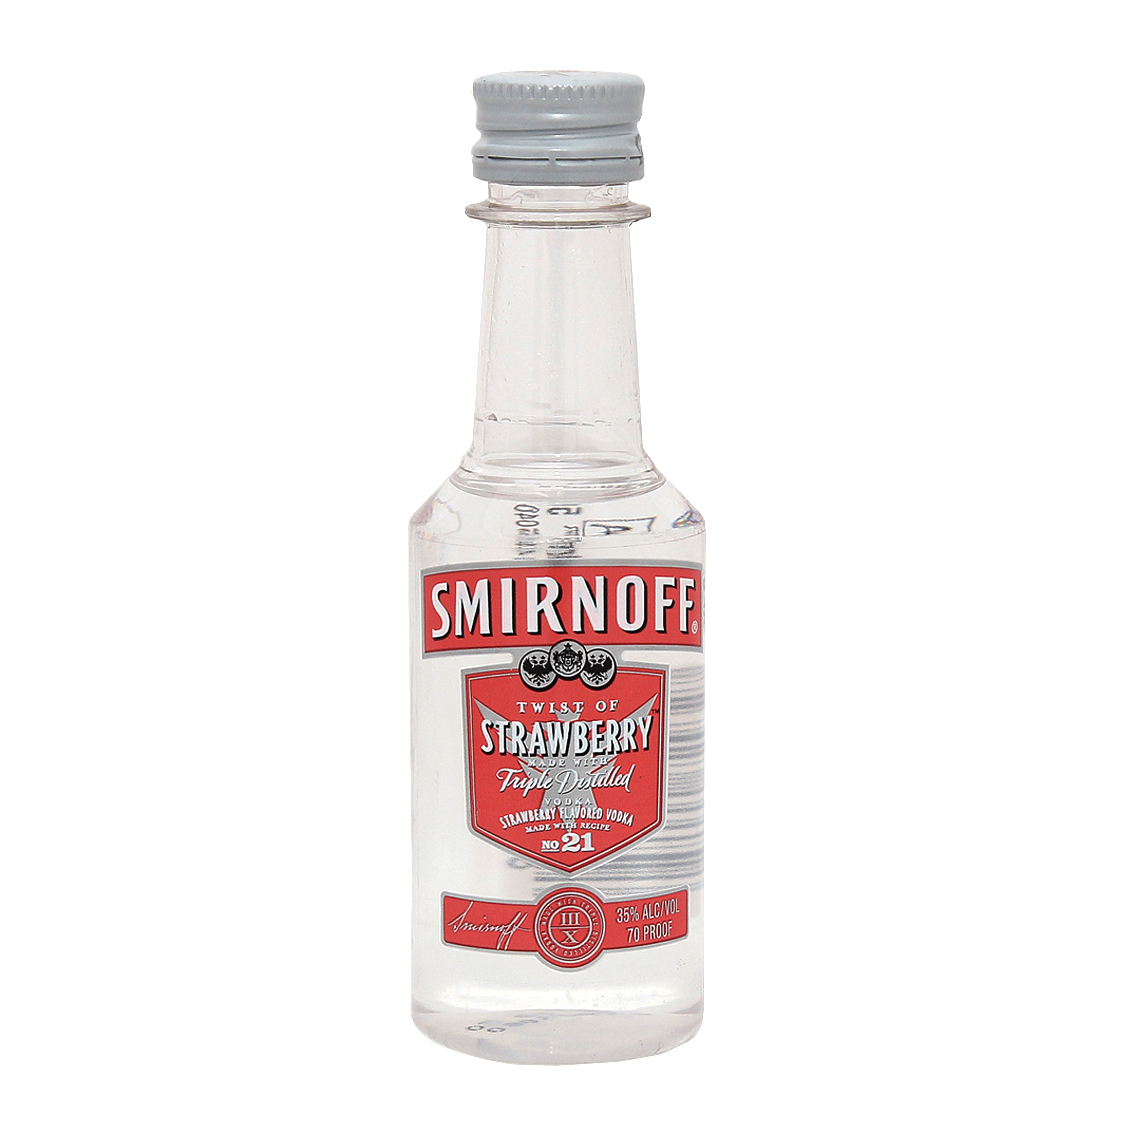 VODKA-SMIRNOFF-III-X-twist-of-STRAWBERRY